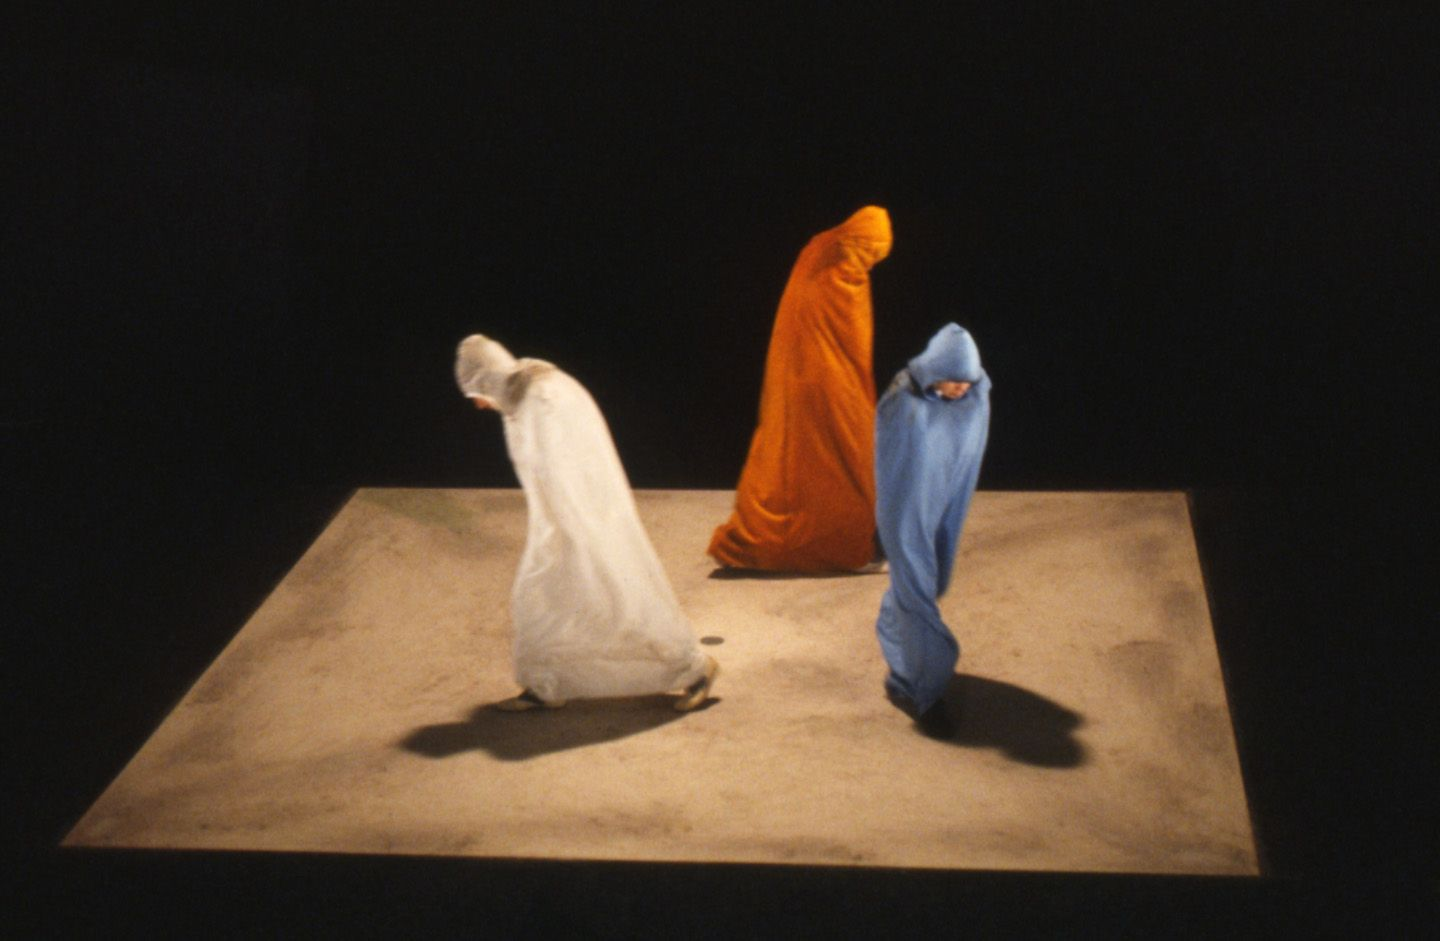 Colour photo: Still from television series Quadrat I, three figures dressed in respectively blue, red and yellow capes walk within a brown square on the ground